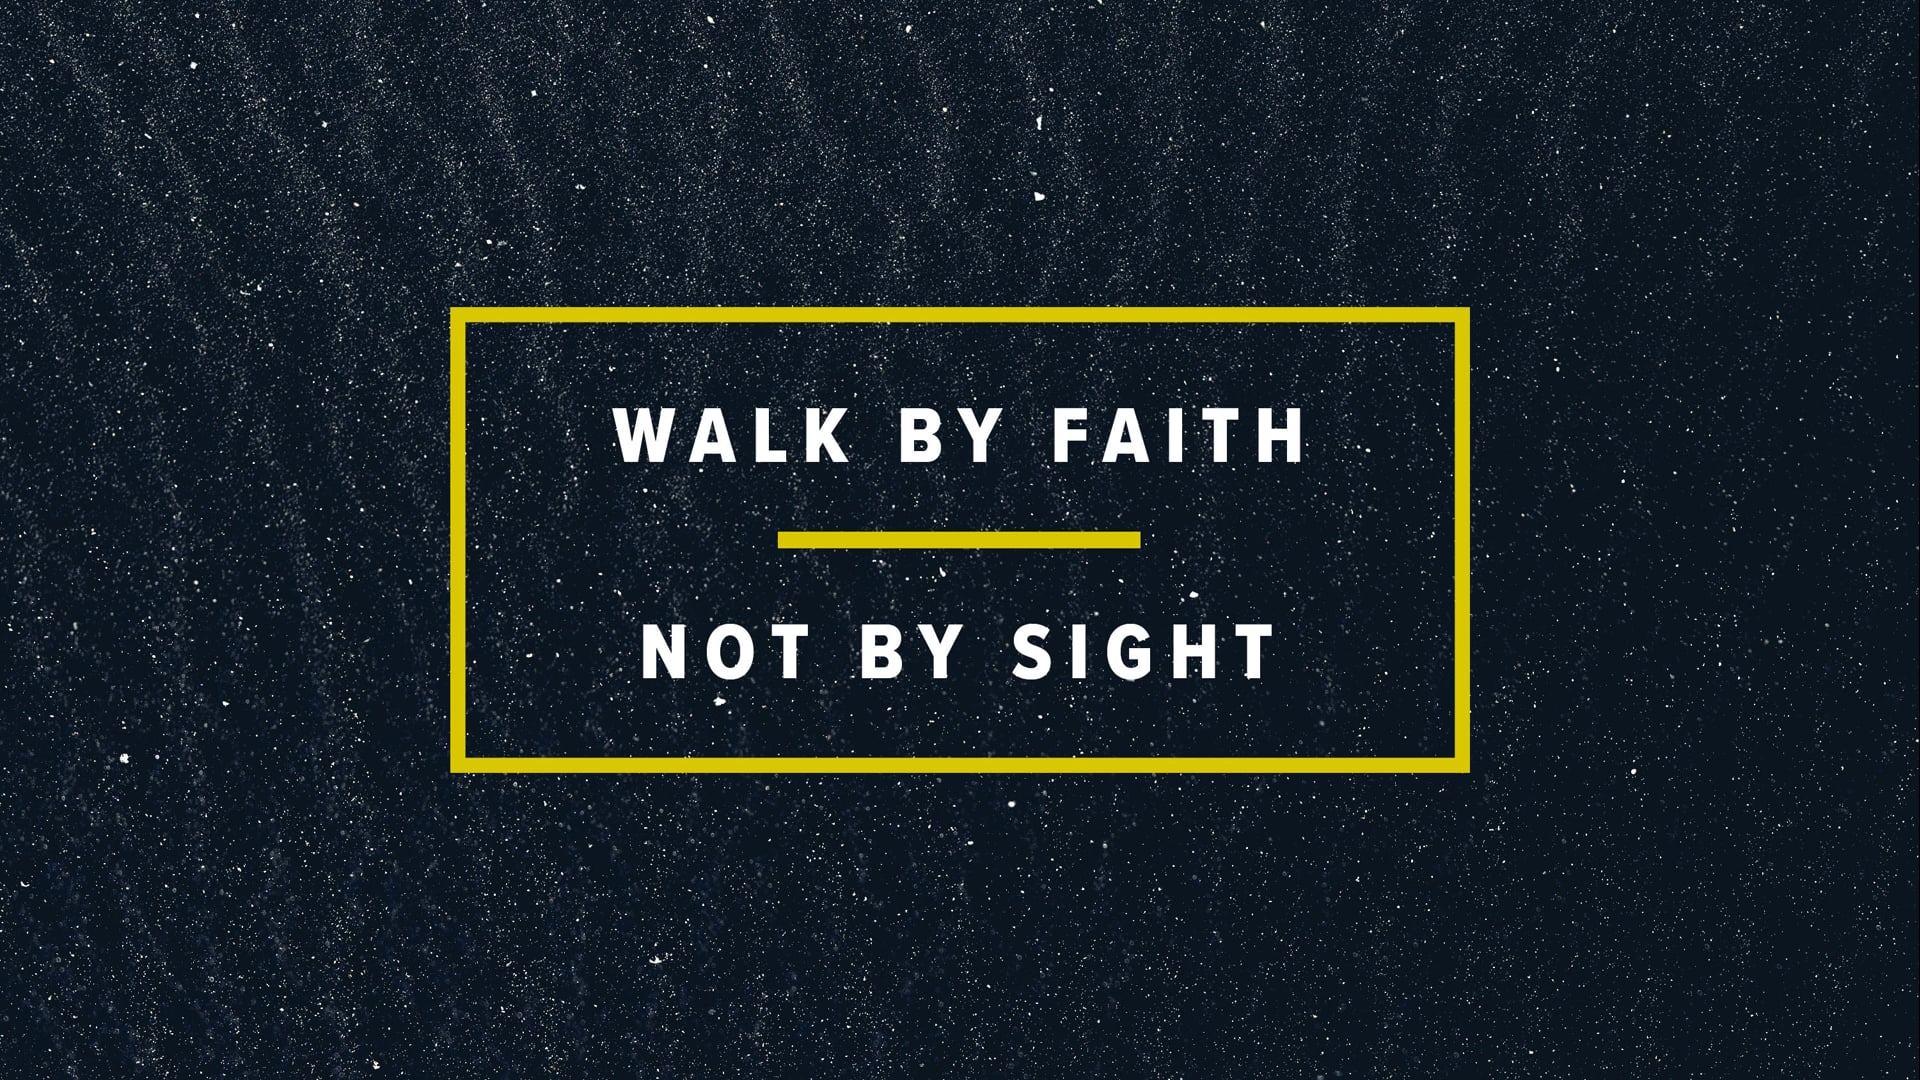 Walk By Faith, Not By Sight